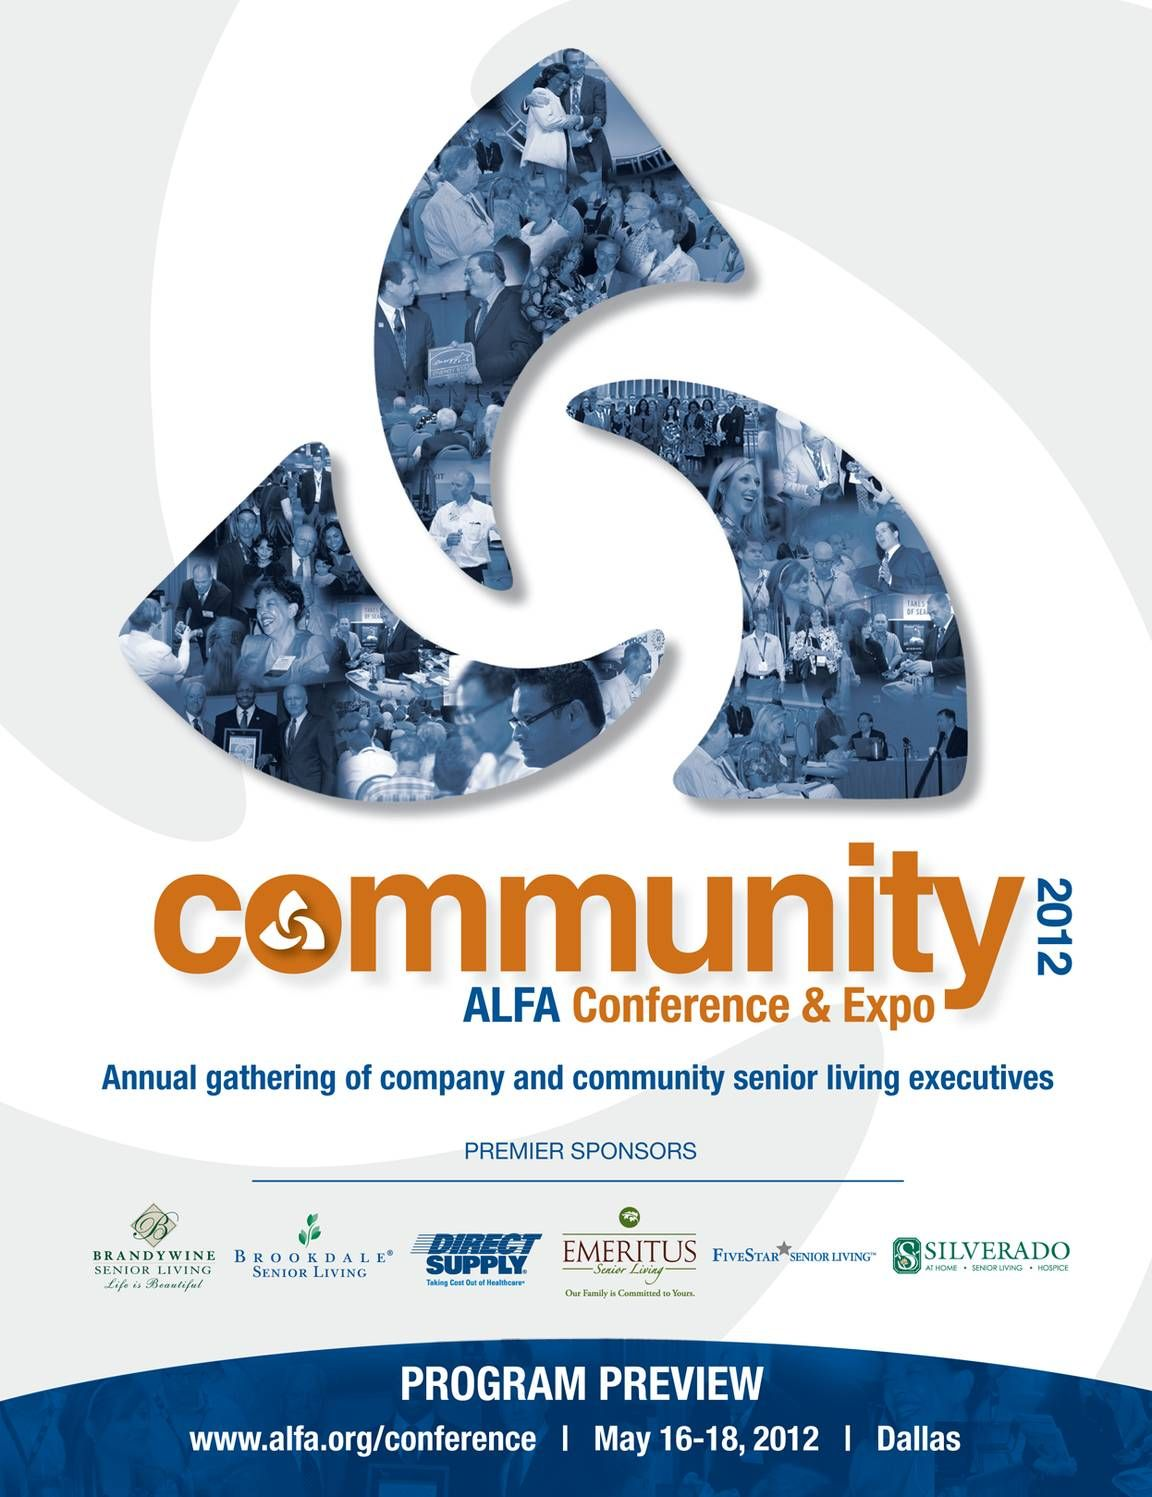 COMMUNITY 2012 program preview. More information about the annual ALFA Conference can be found at alfa.org/conference.